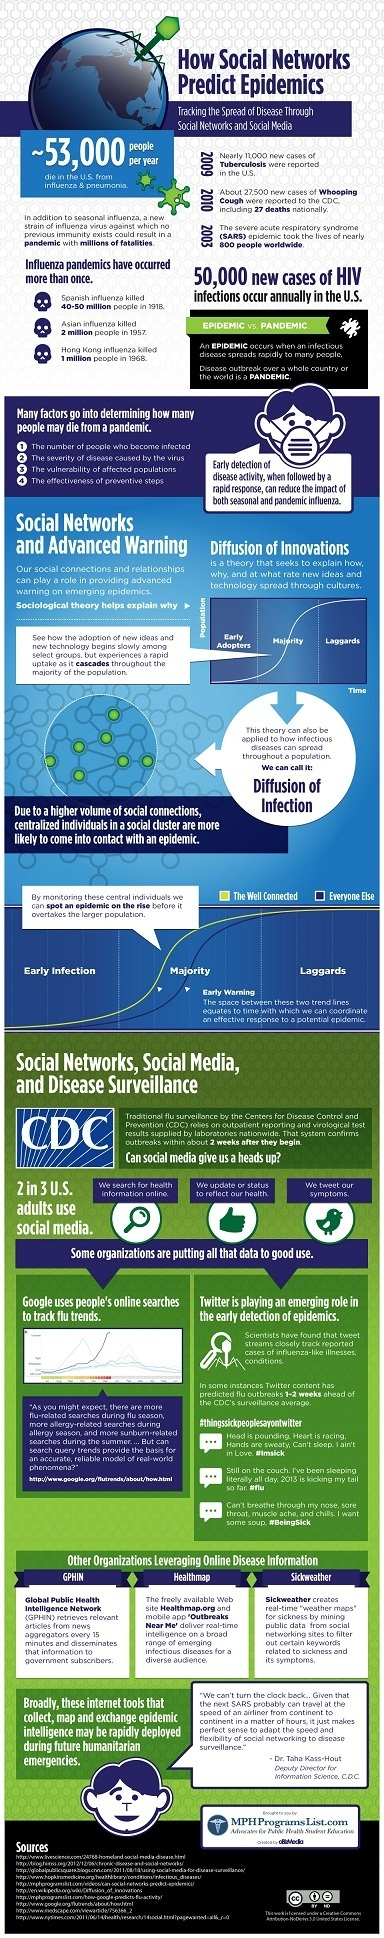 How Twitter Can Predict Flu Outbreaks Faster Than the CDC Infographic | Life Technology Nature Science Human | Scoop.it